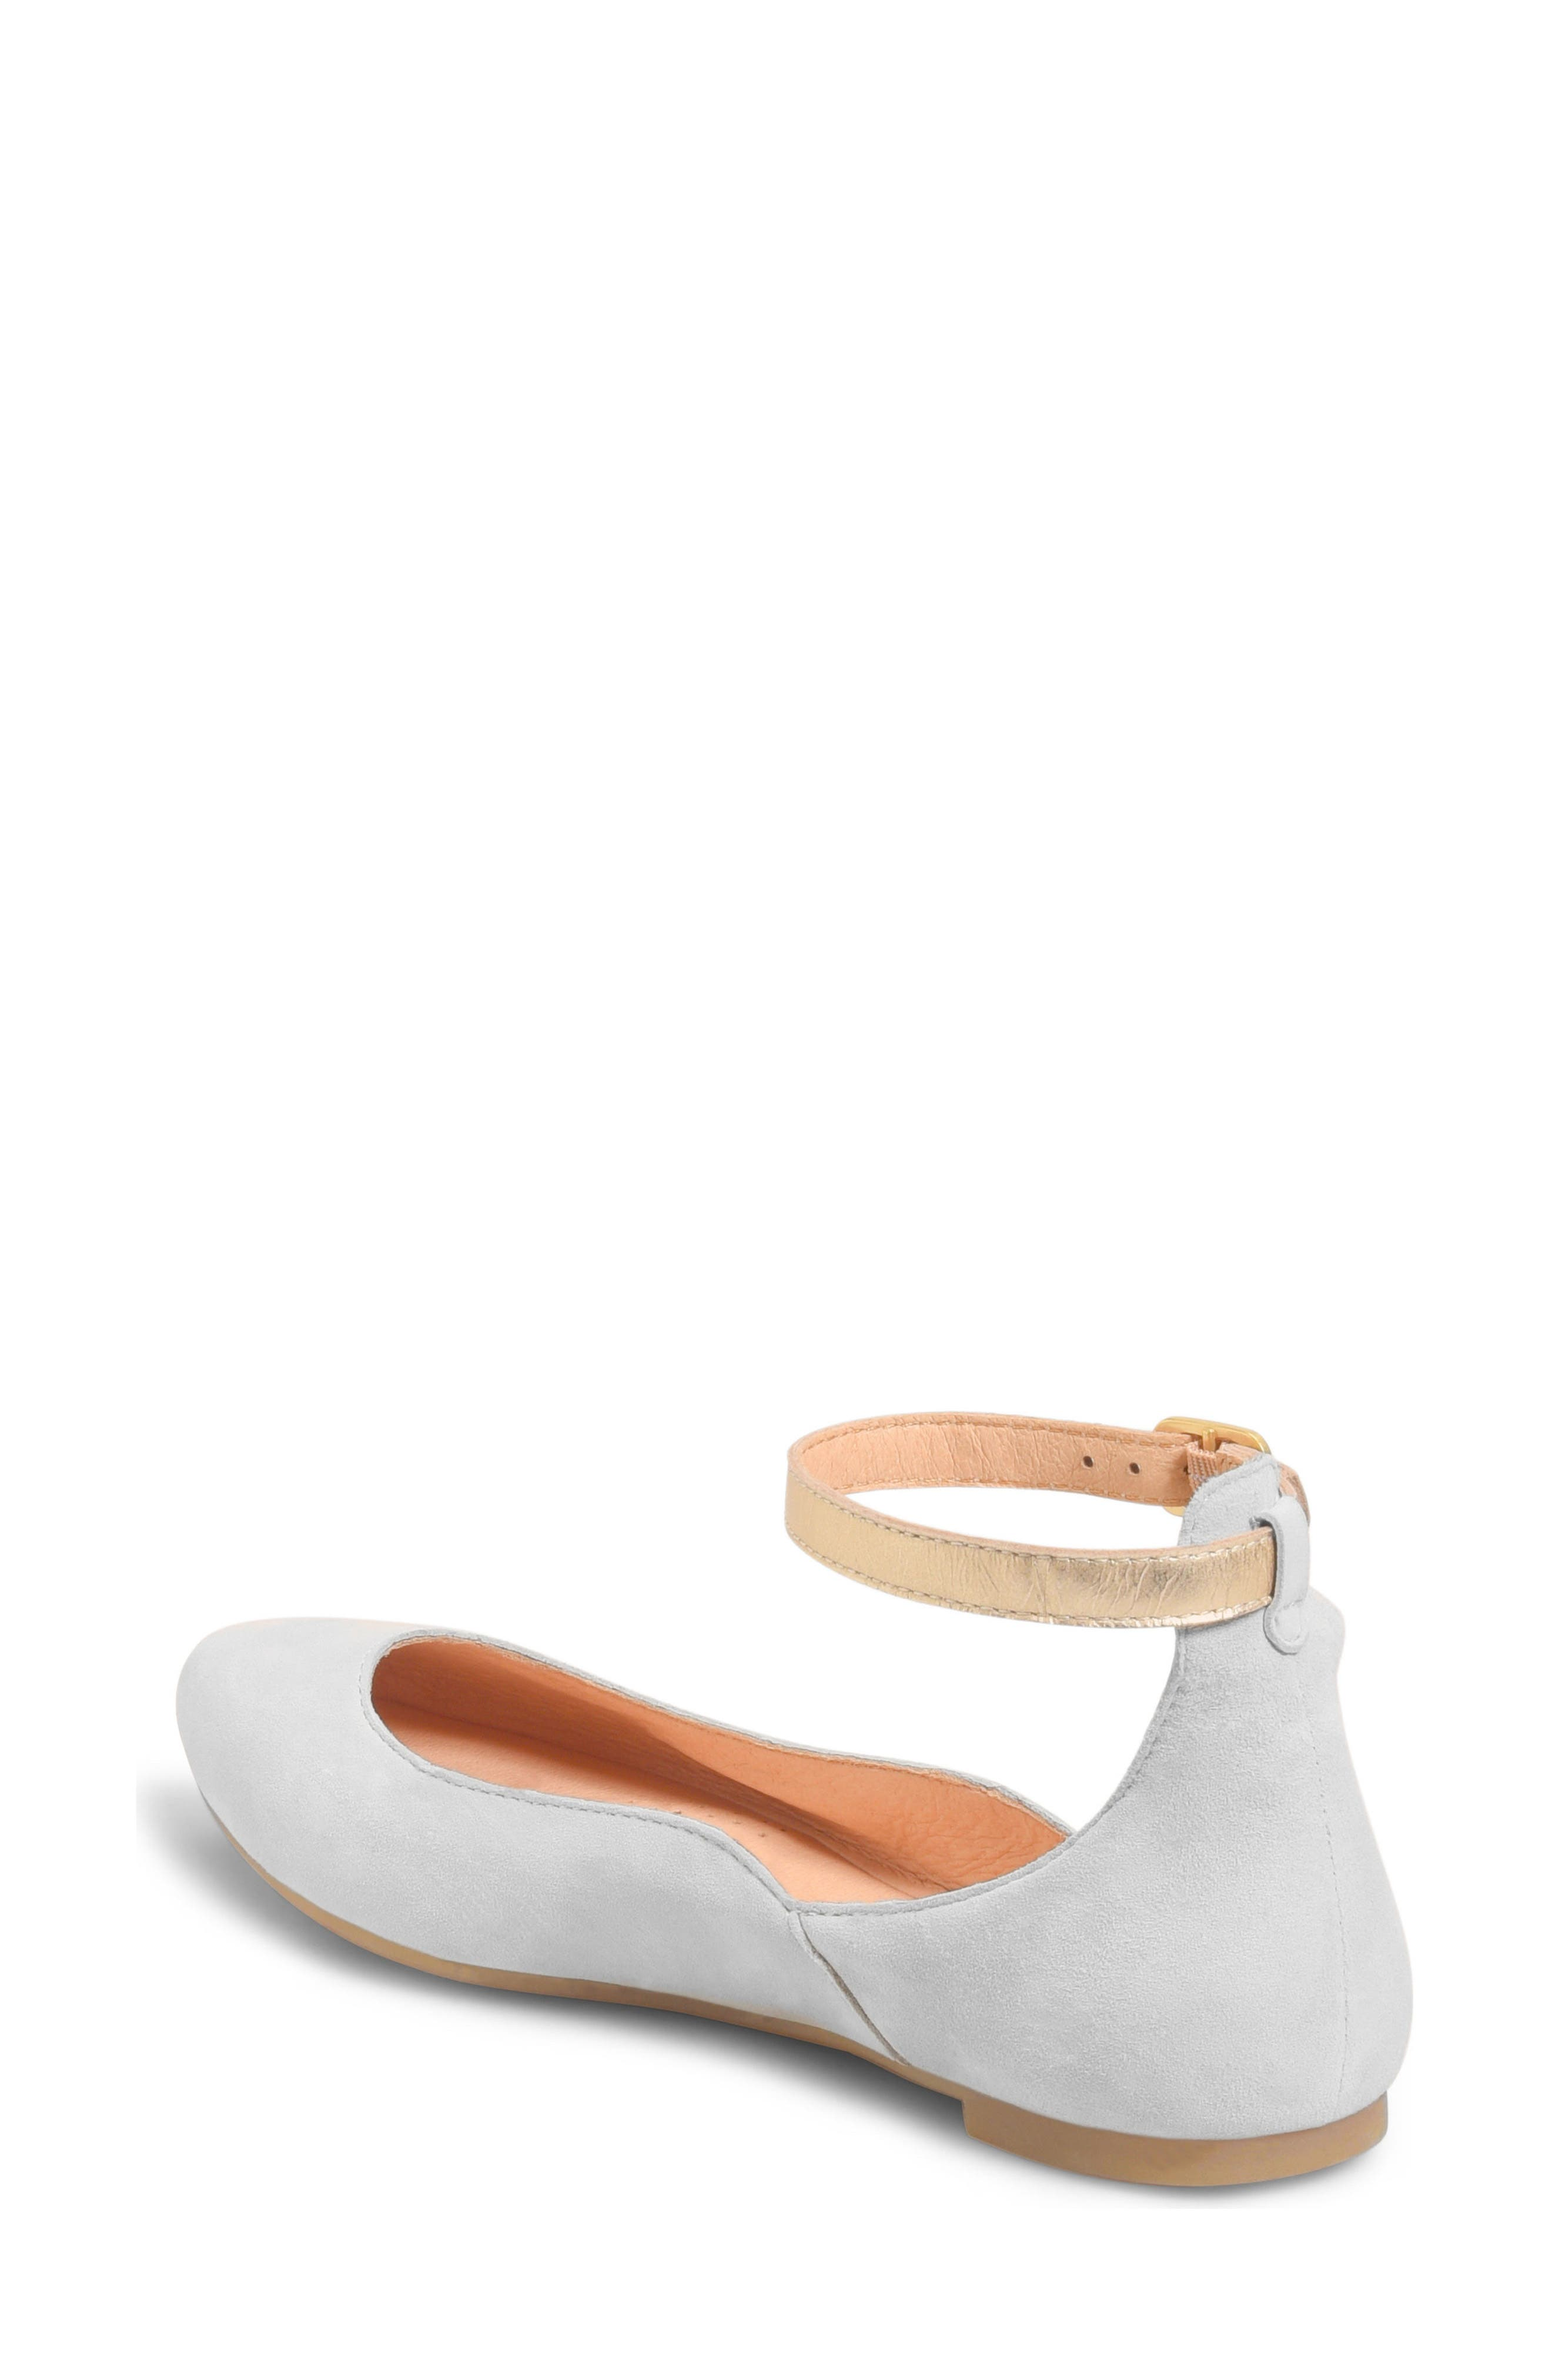 Luchia Ankle Strap Flat,                             Alternate thumbnail 2, color,                             Light Grey/ Gold Leather